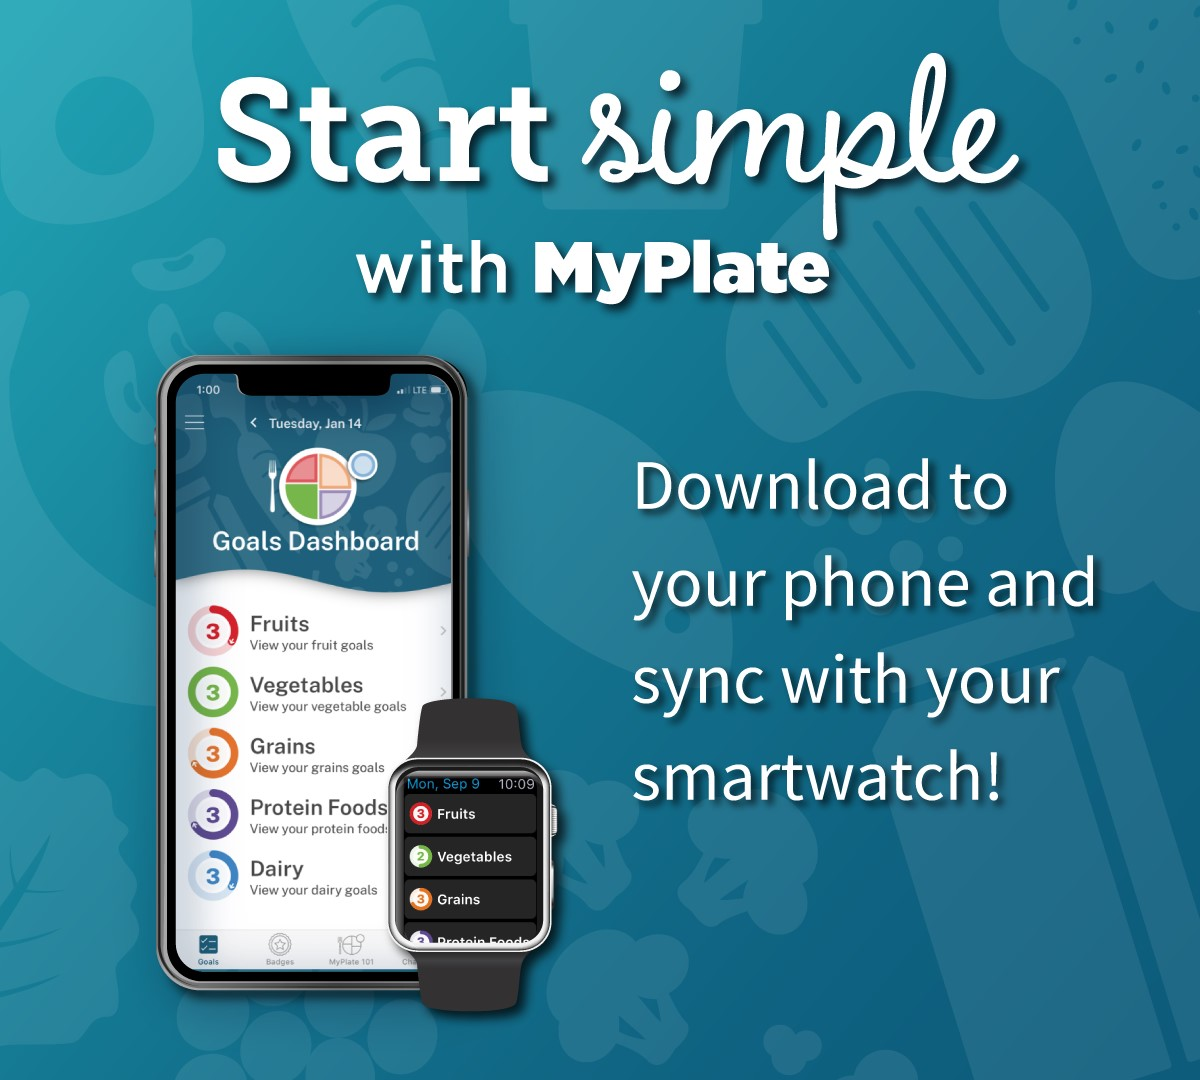 Did you know that MyPlate recently launched an app?! It helps you incorporate the MyPlate food groups into daily life by making positive changes and tracking them, one simple goal at a time! Check it out now at https://go.usa.gov/xdq8h .pic.twitter.com/Tz0898MUc7